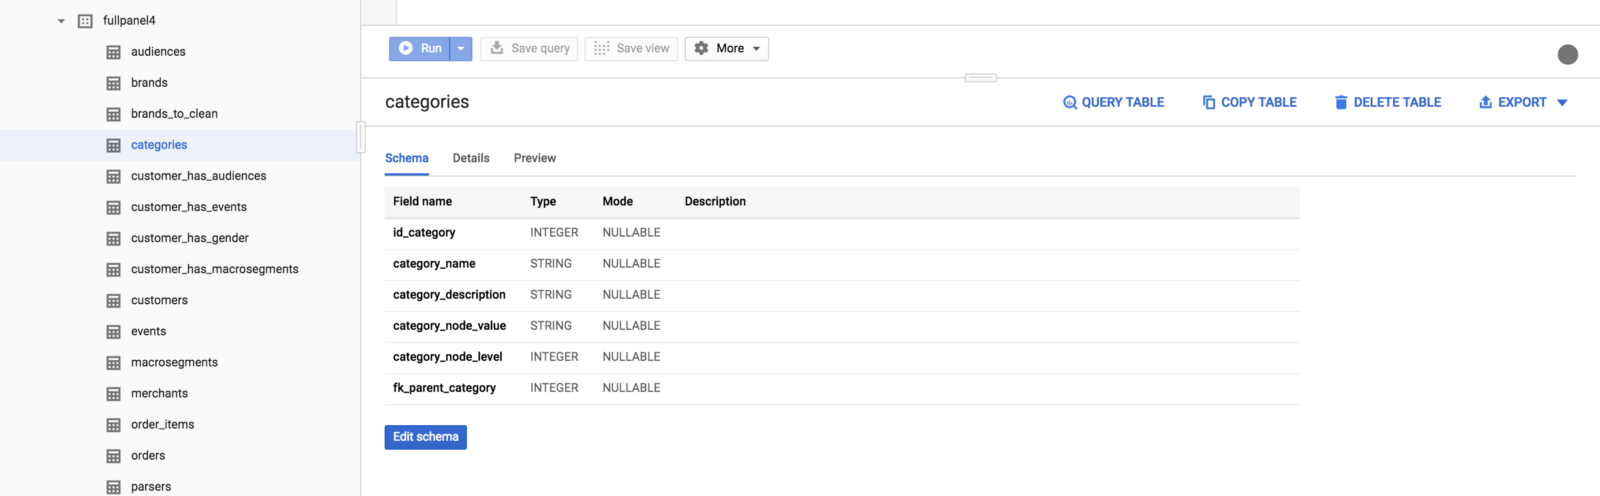 Ingest Data from RDS MySQL to Google BigQuery - Mohamed Labouardy